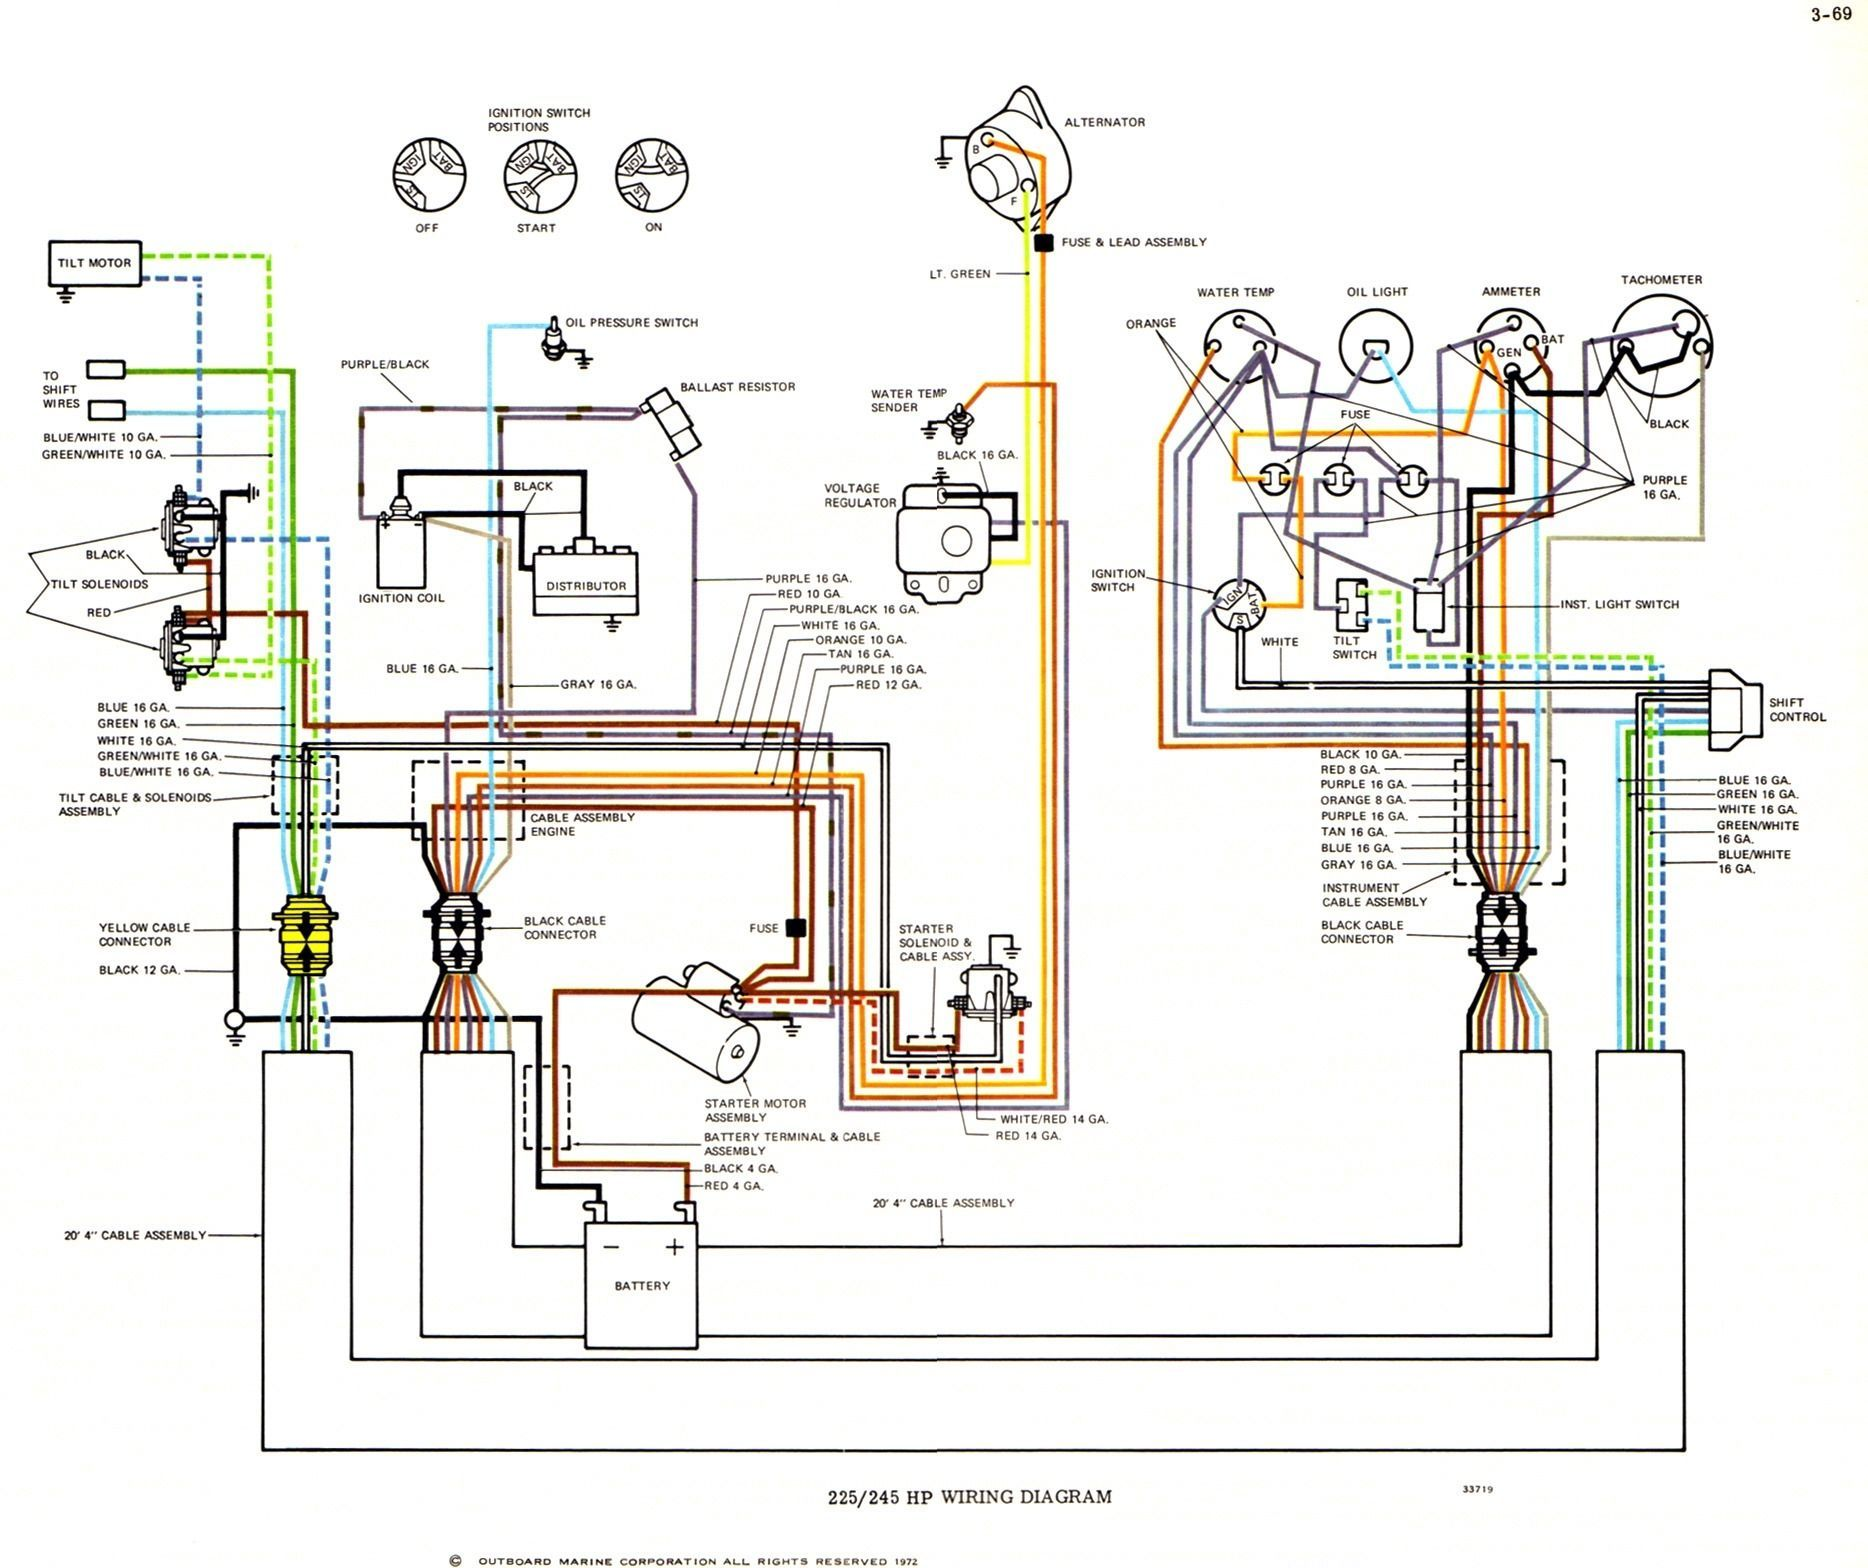 Yamaha 150 Outboard Wiring Diagram Boat Wiring Electrical Wiring Diagram Electrical Wiring